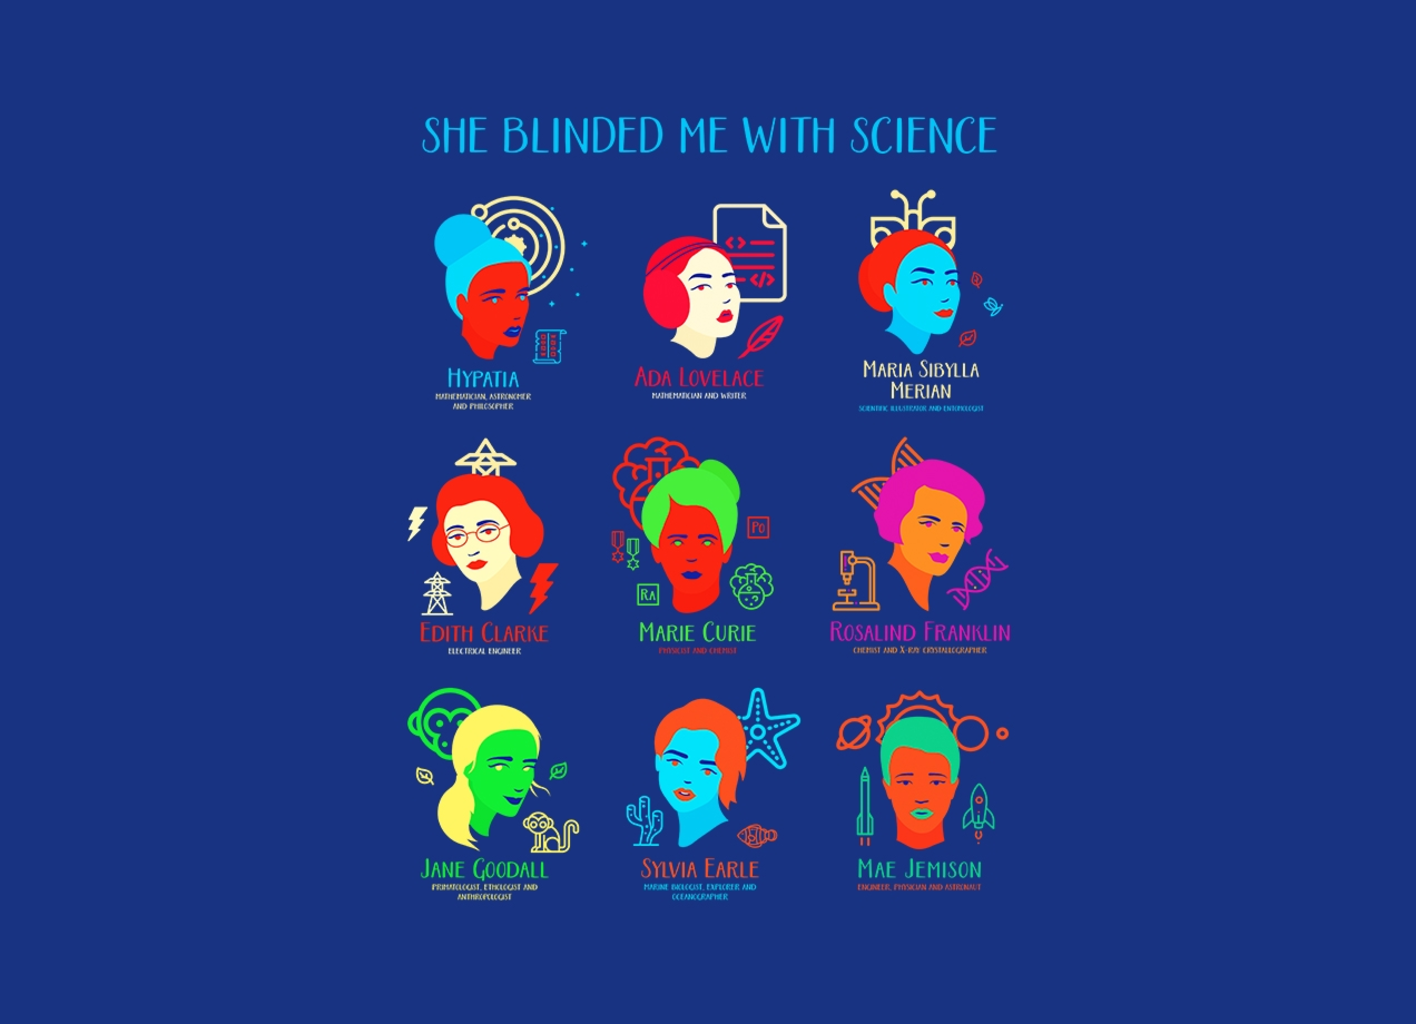 Threadless: She Blinded Me with Science